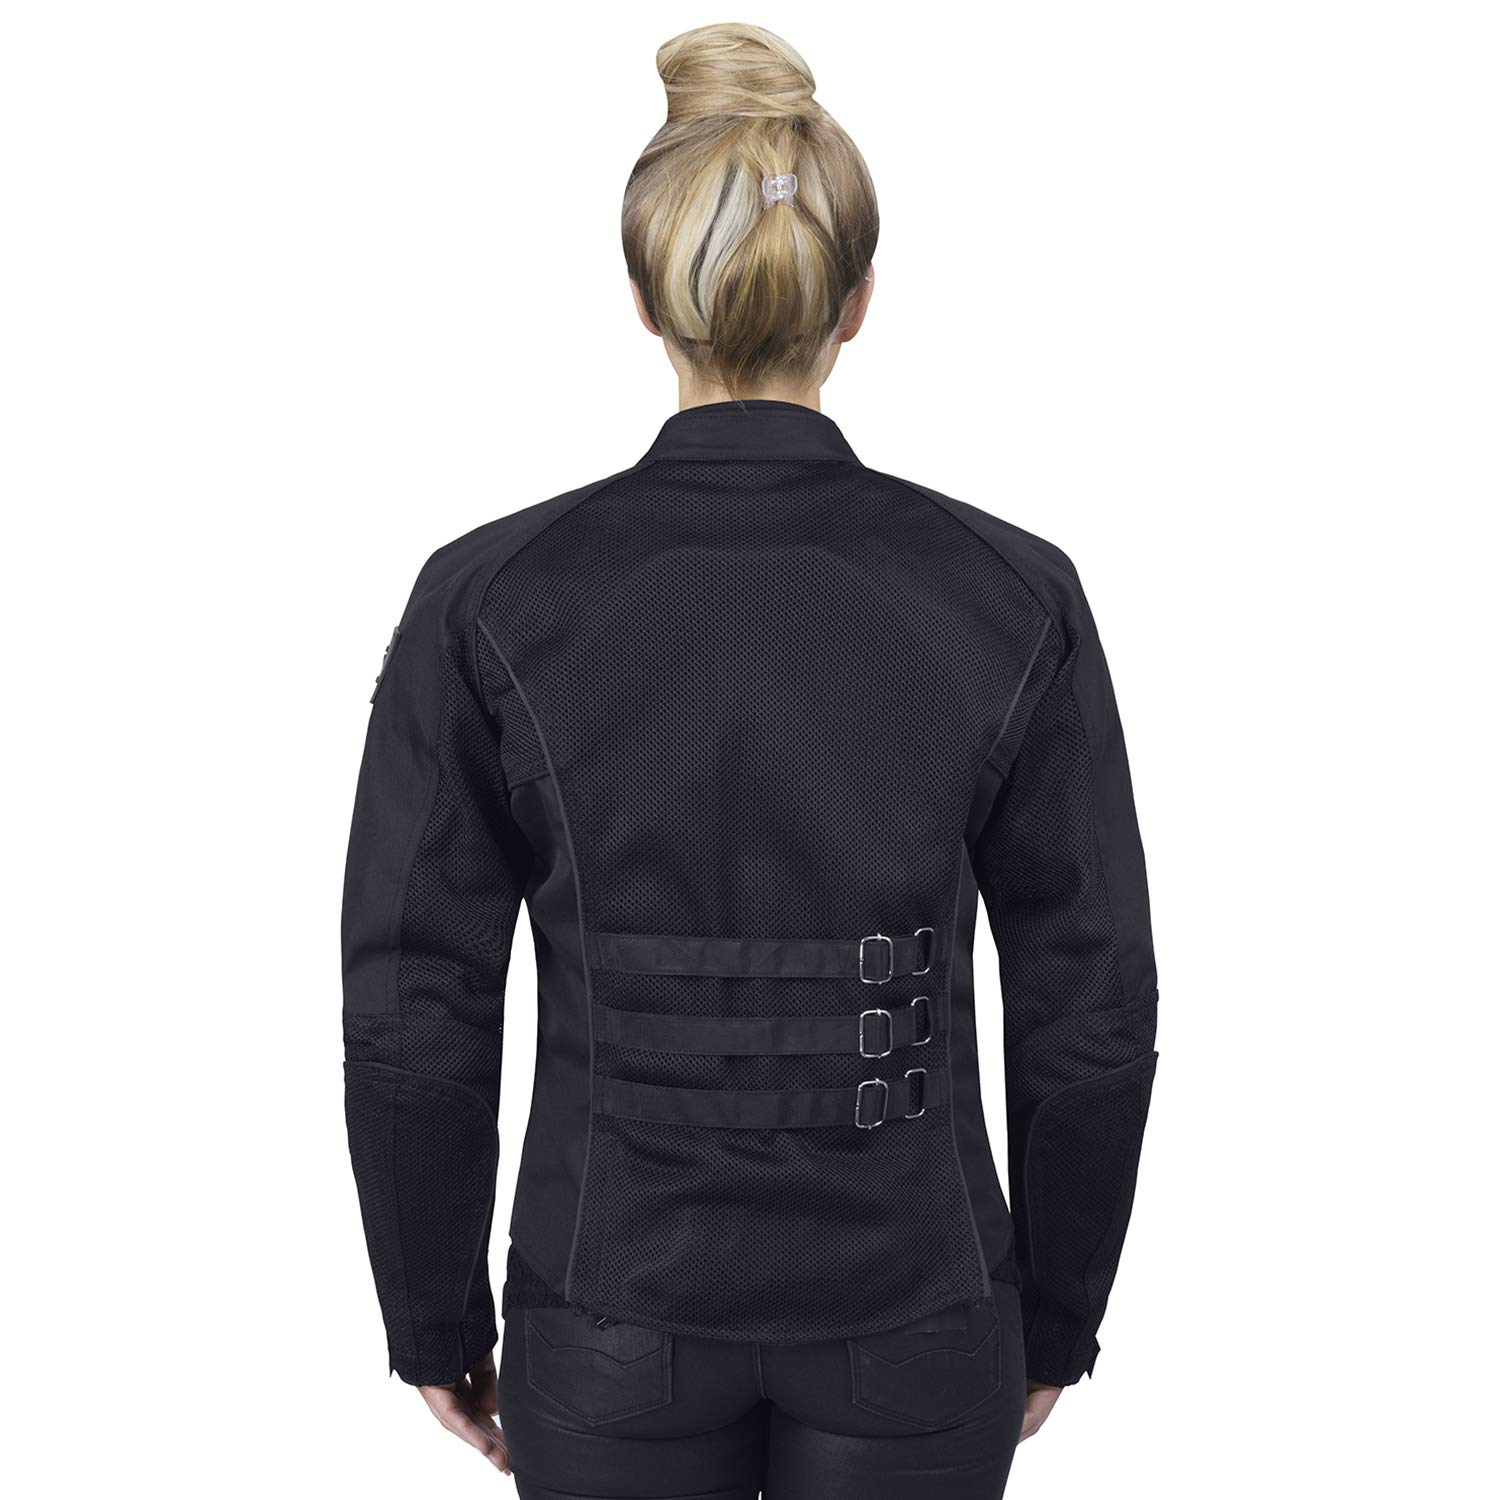 Viking Cycle Warlock Womens Mesh Motorcycle Jacket